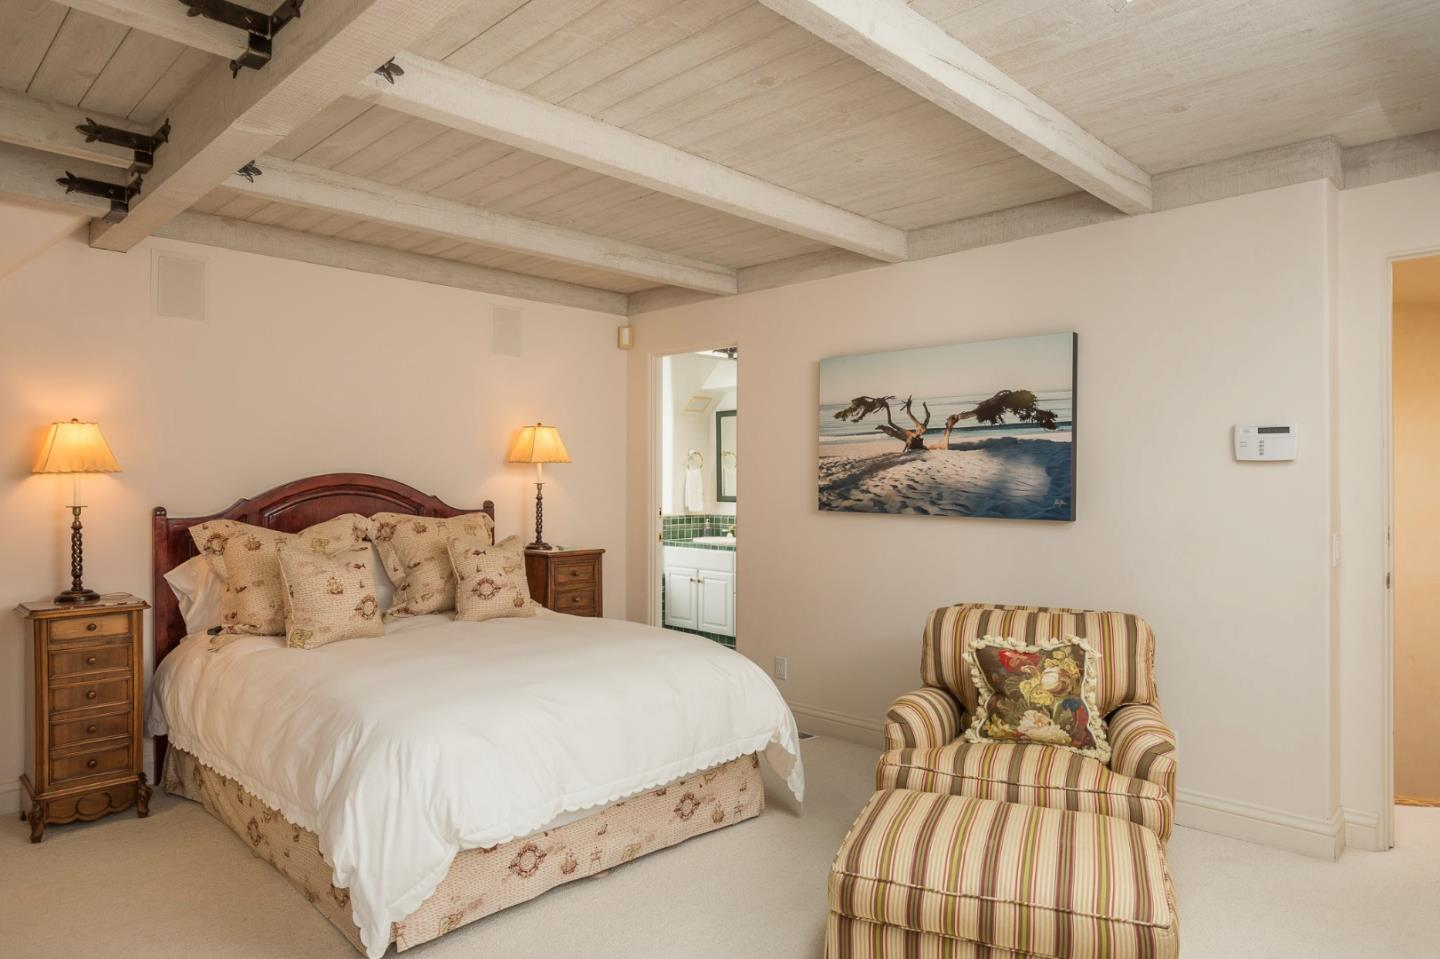 Storybook cottage in Carmel Ca for sale - One of the two bedrooms